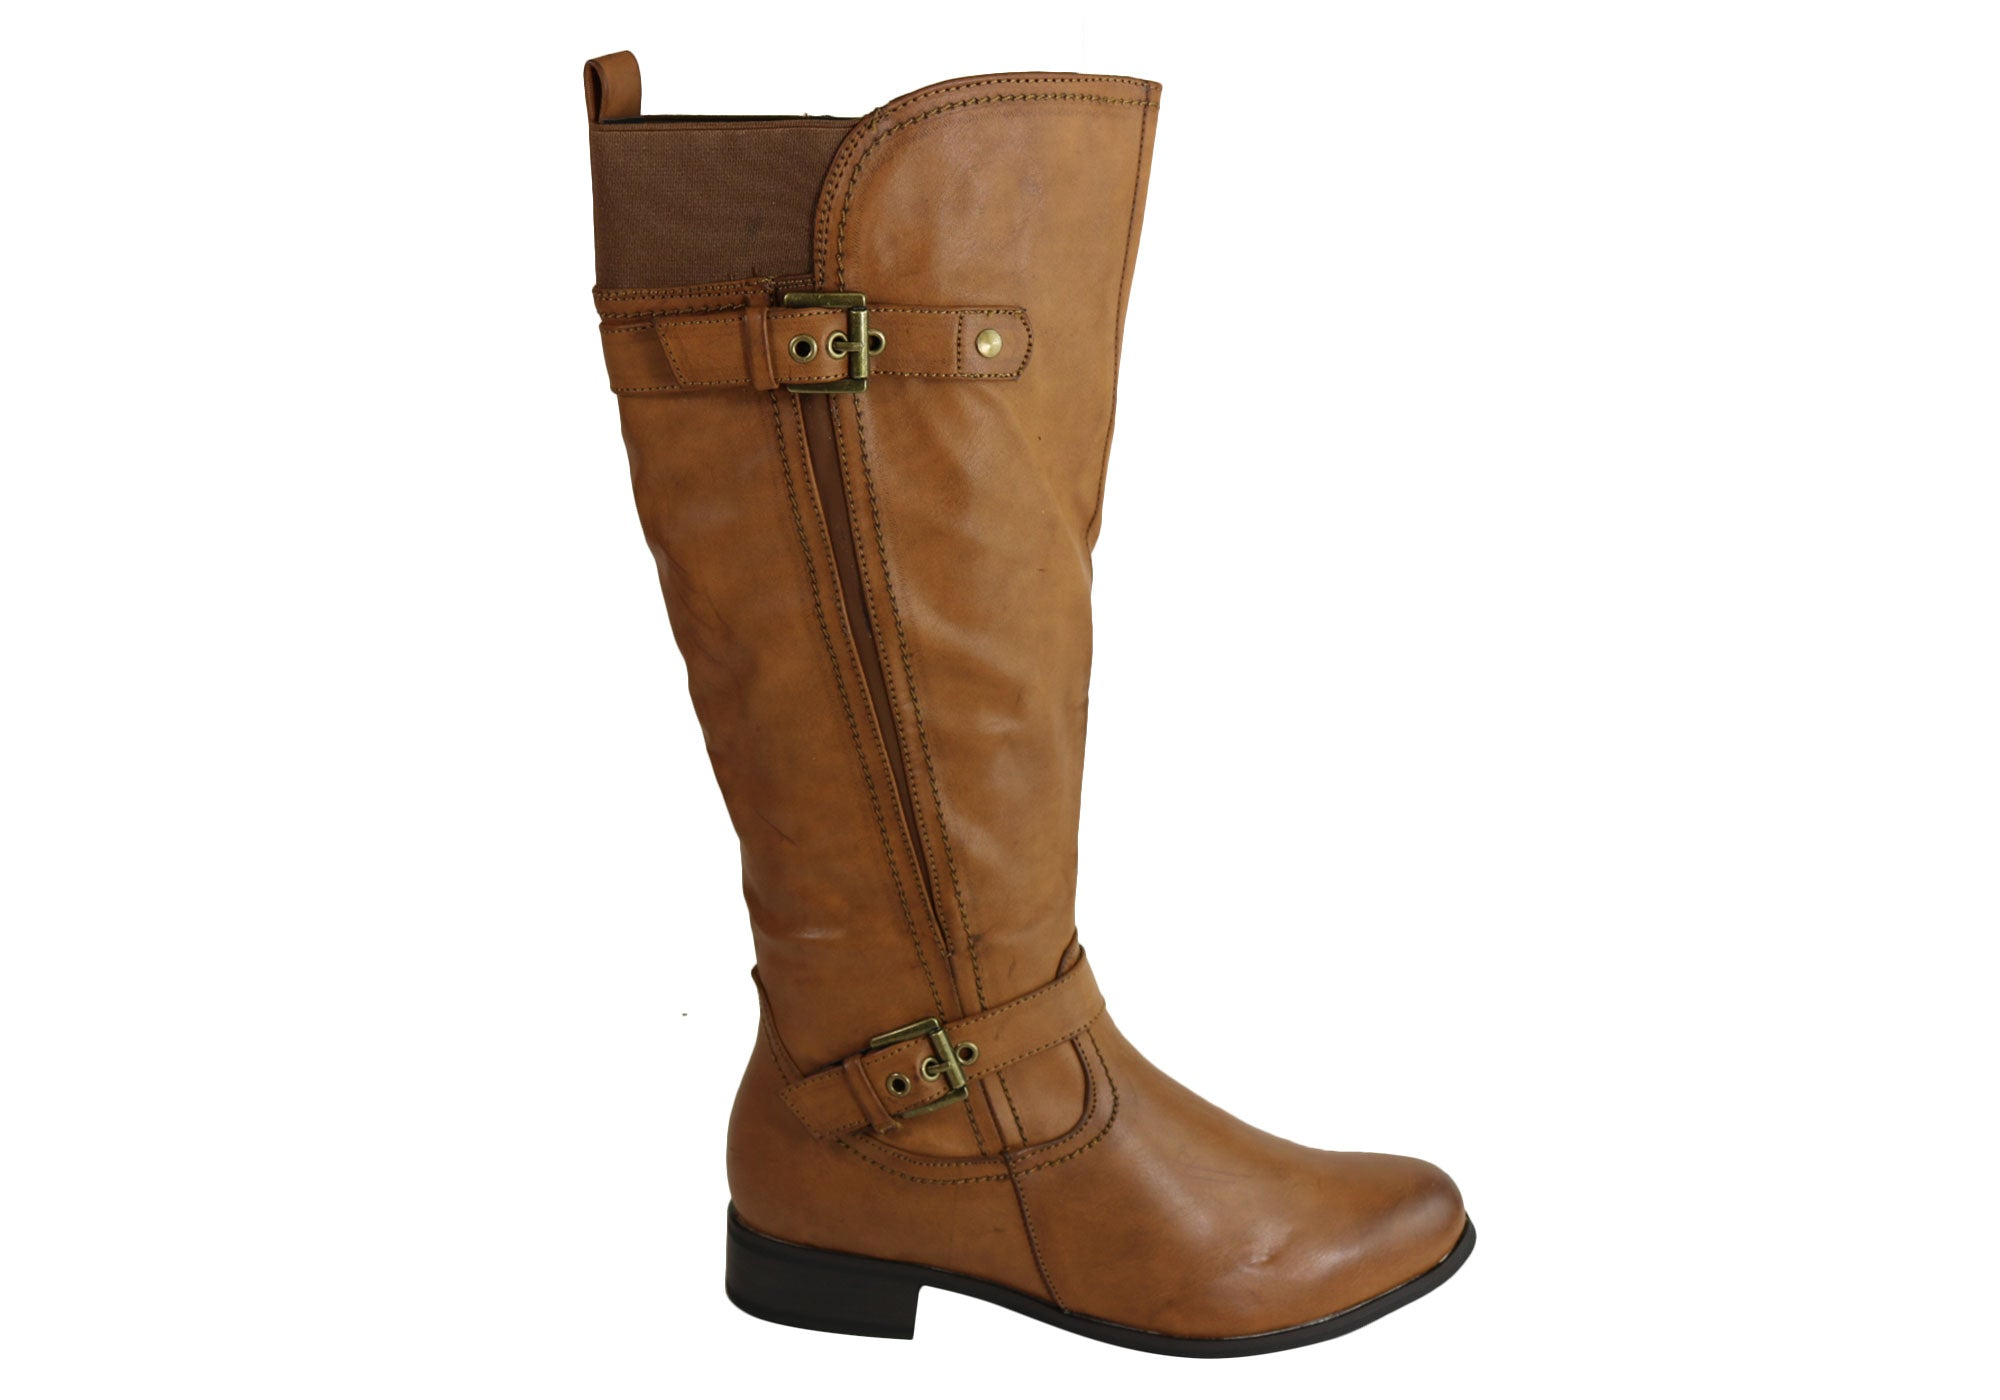 pu color strap select prod p knee calf s buckle kitten moda high top boots mid src com women comforter leather comfortable